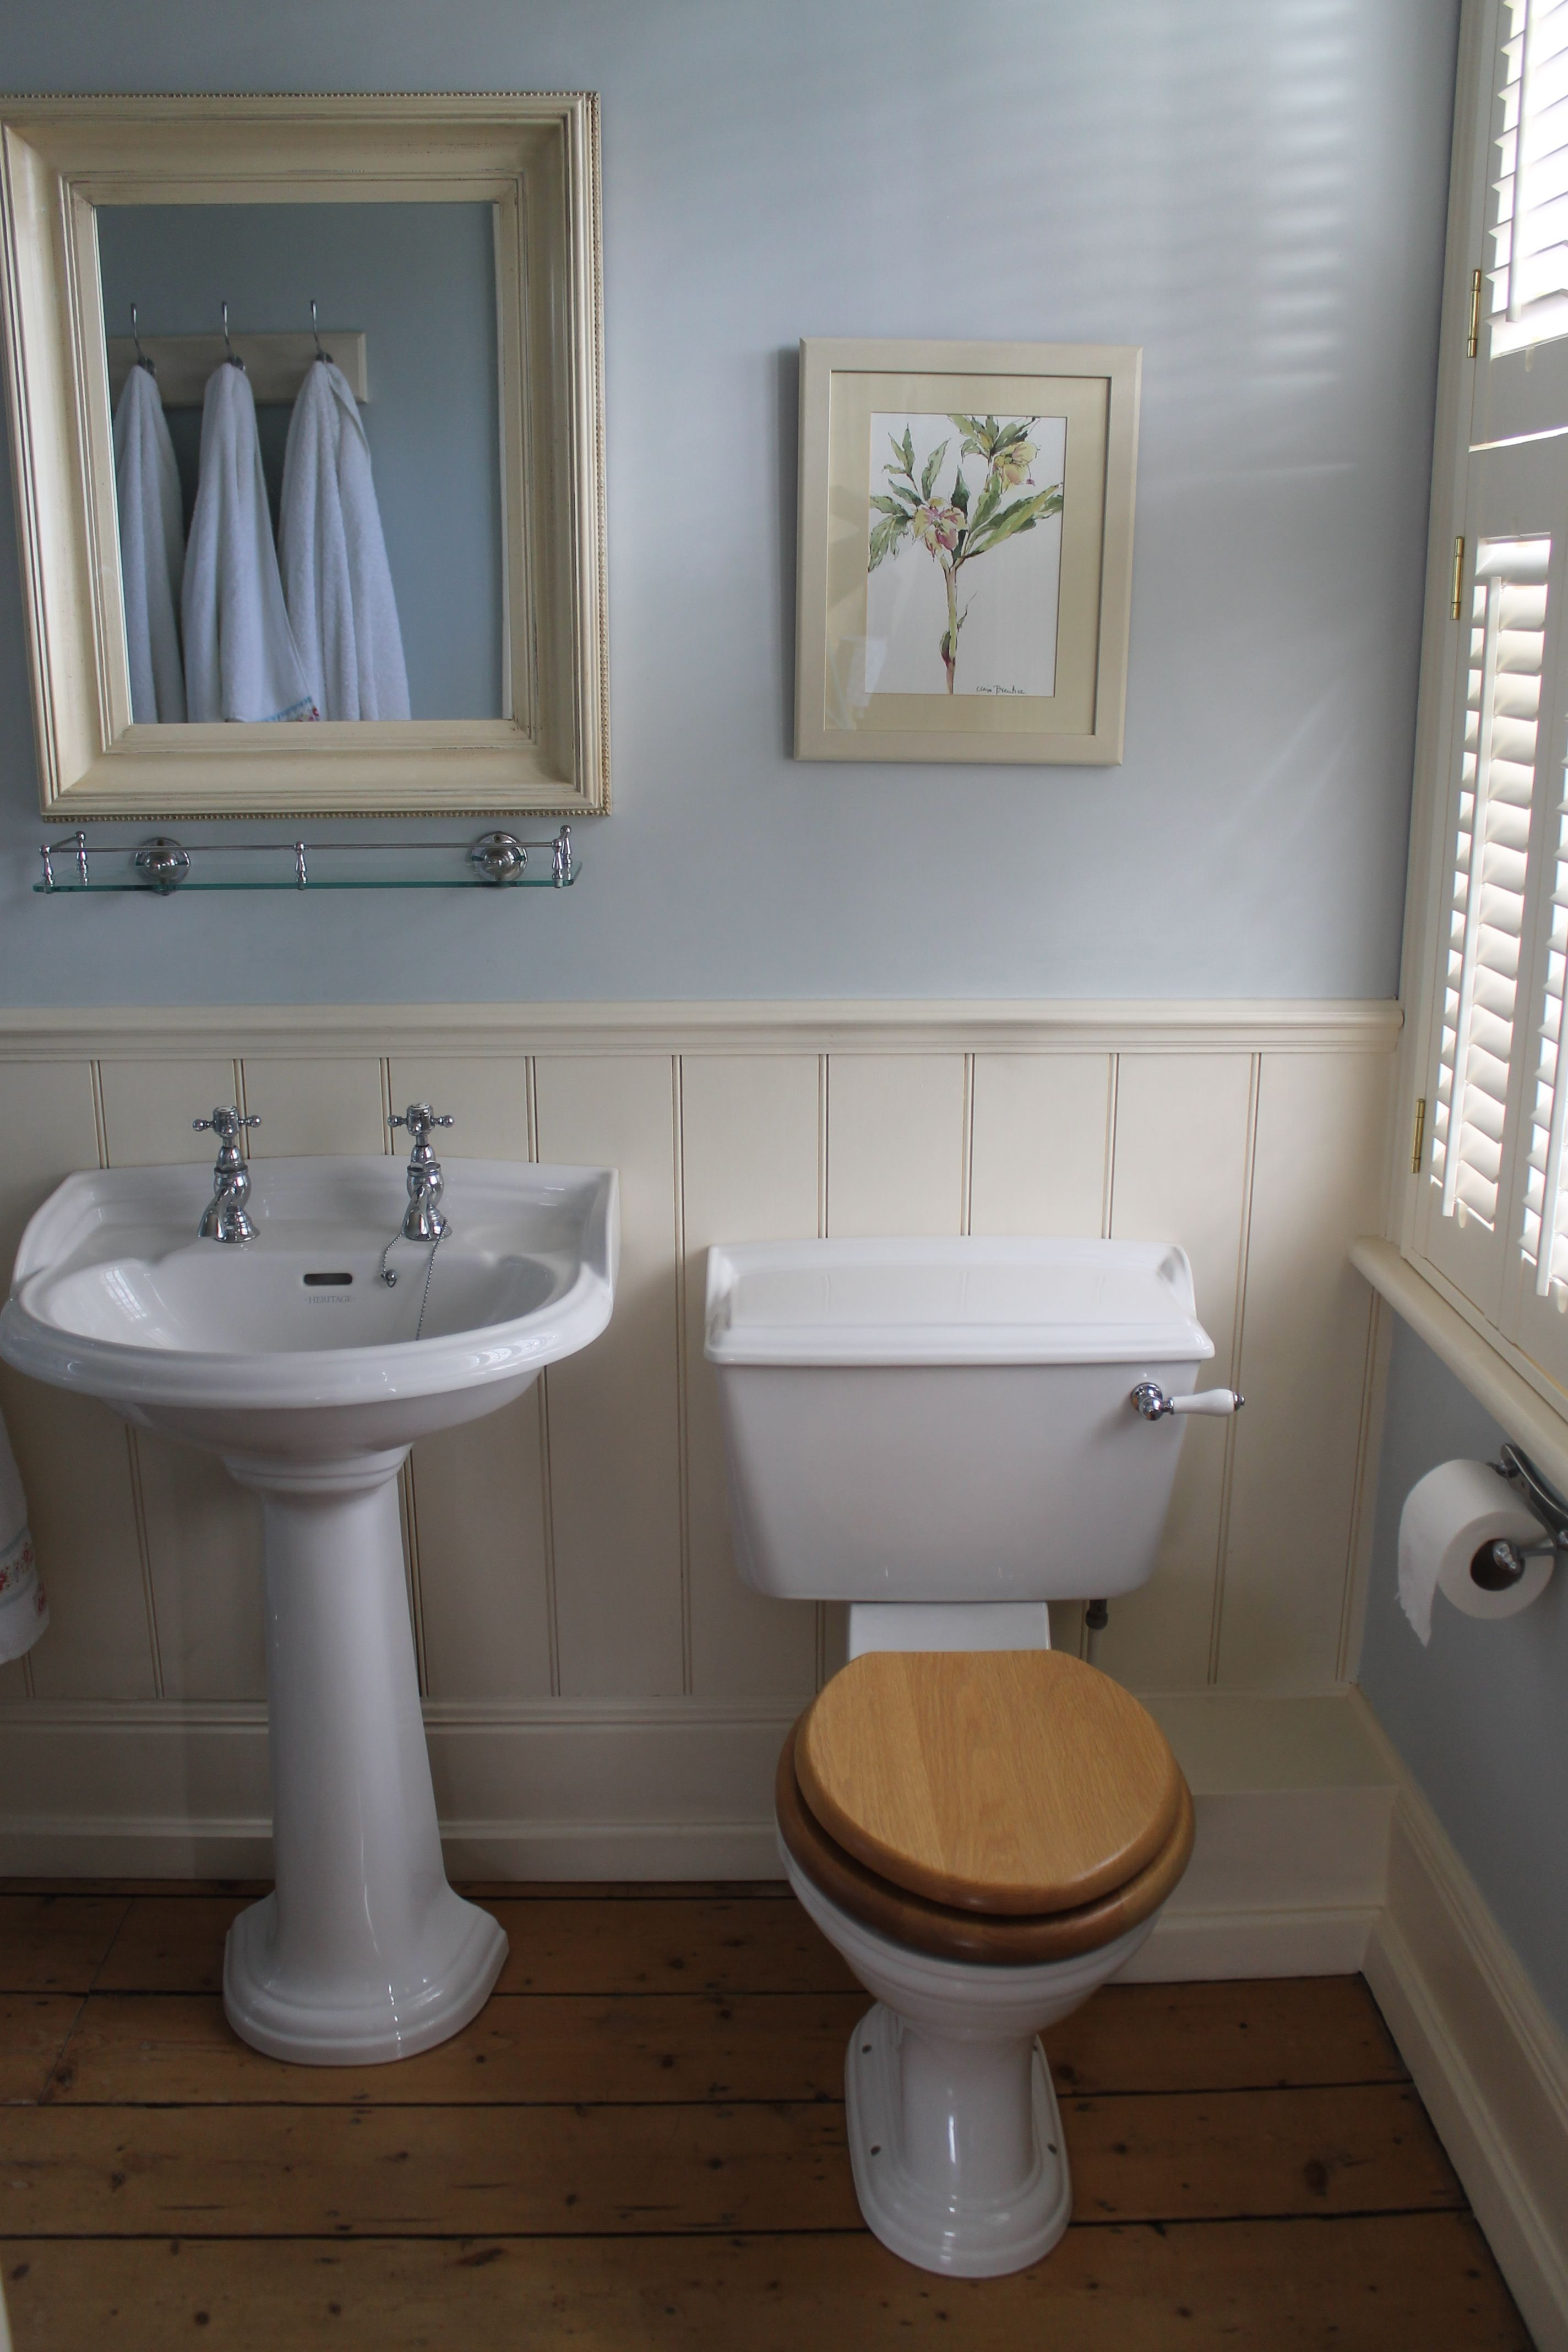 Tongue And Groove Panelling In Ensuite Bathroom Walls In Farrow And Ball Borrowed Light Cottage Bathroom Small Bathroom Country Style Bathrooms